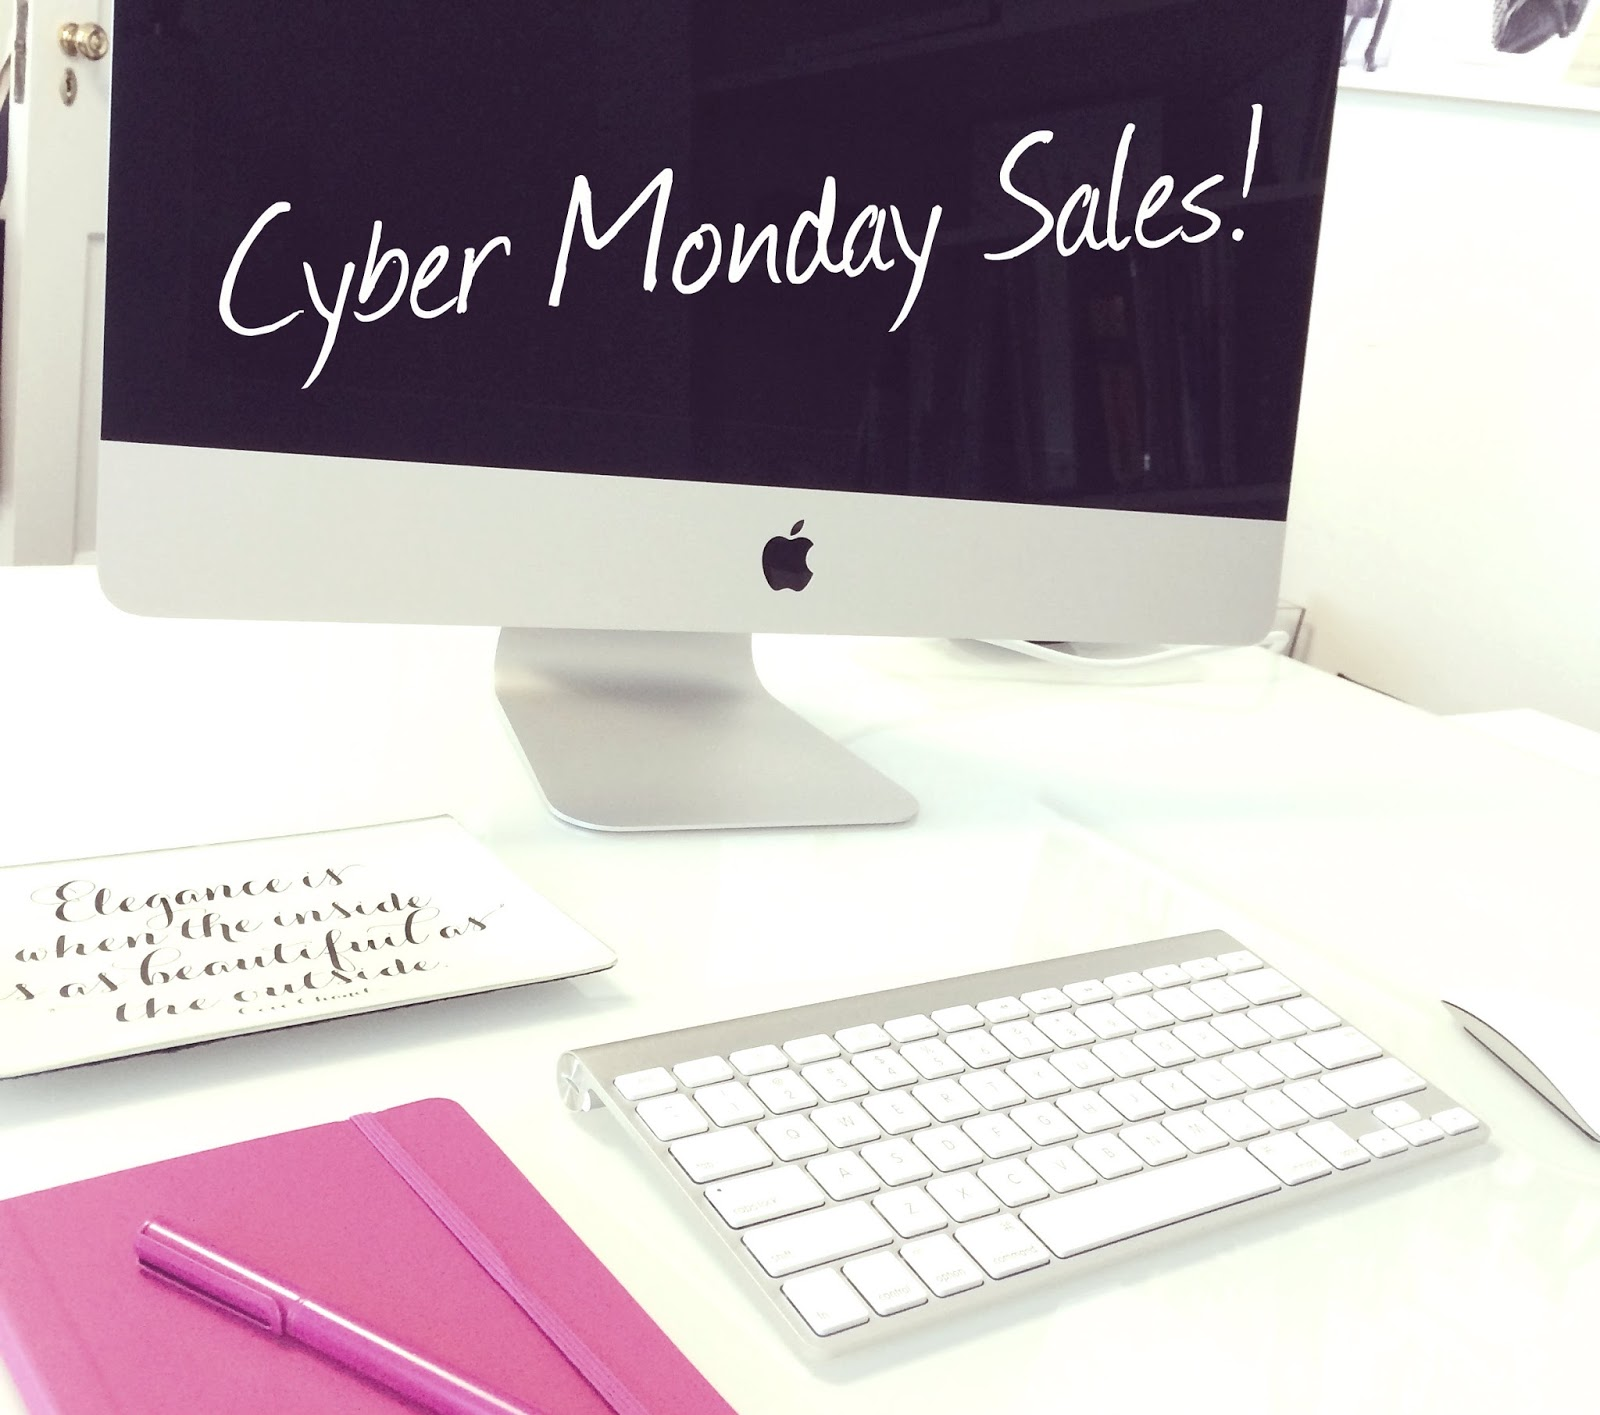 Cyber_Monday_Sales_Photo